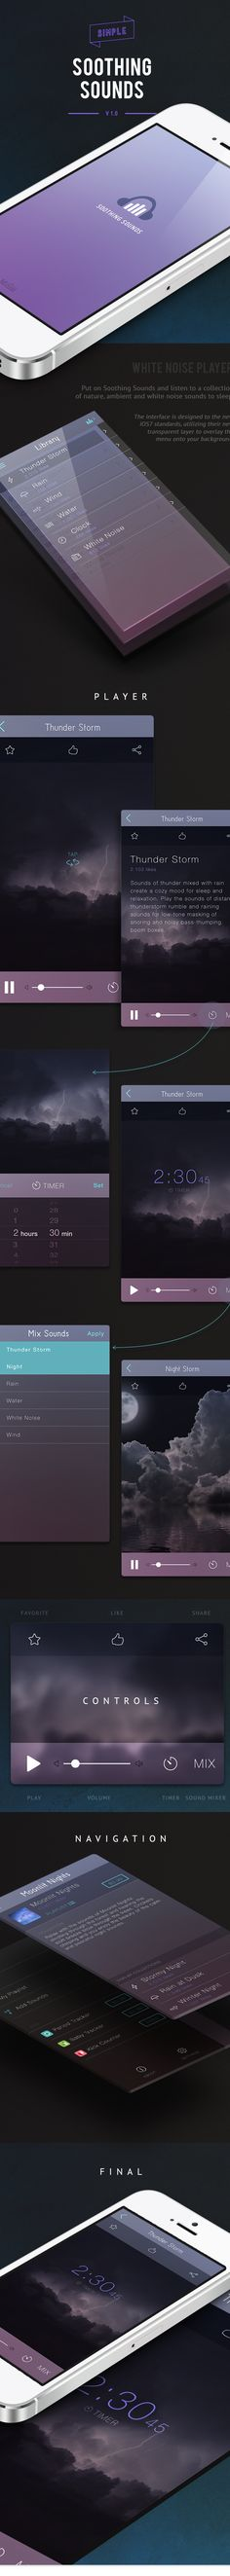 Soothing Sounds - iPhone App by Dianna Su, via Behance